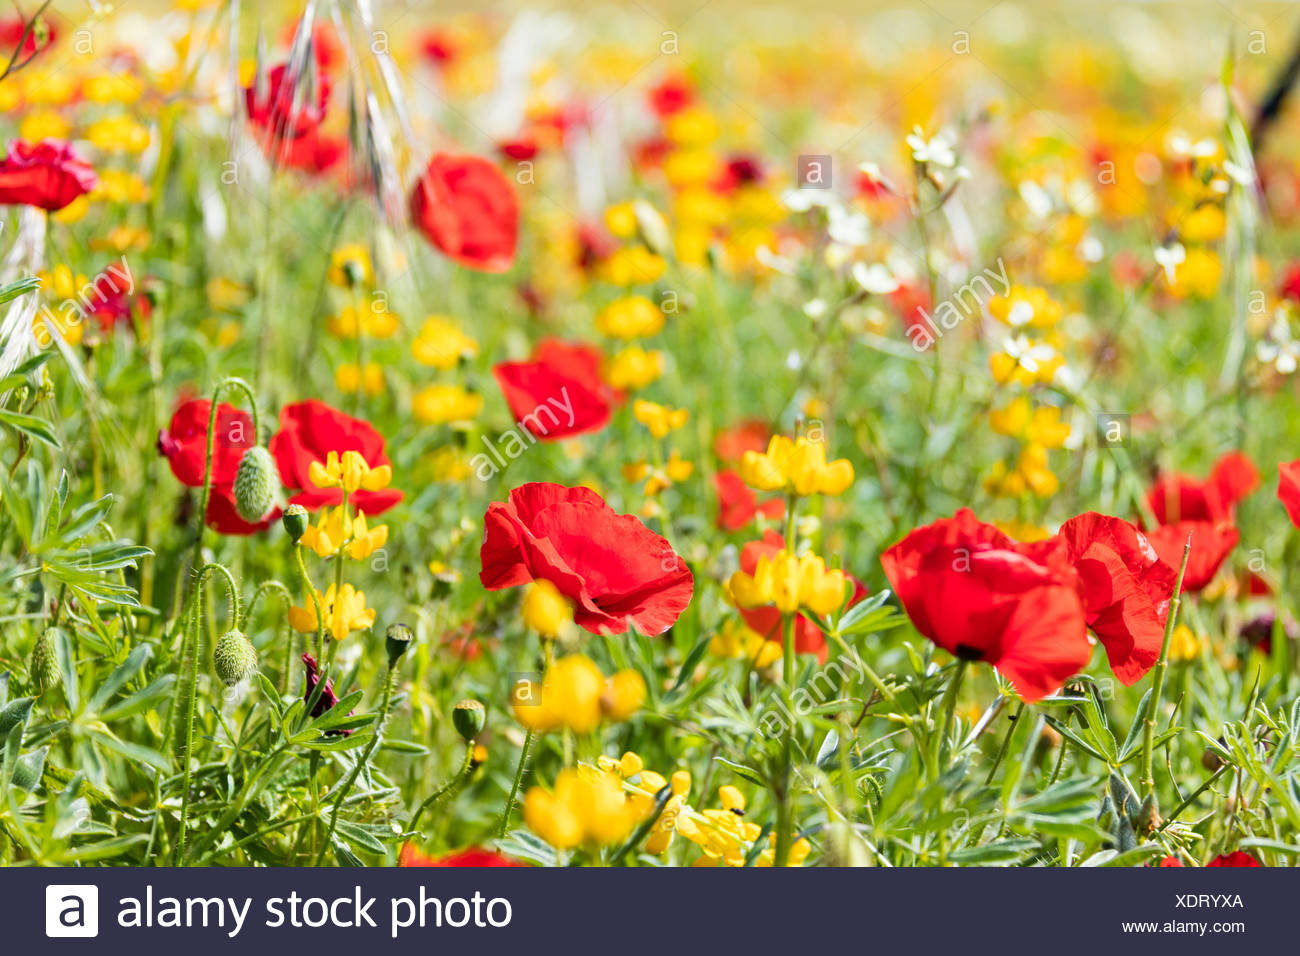 Red Poppies And Yellow Flowers During The Spring Bloom In The Green